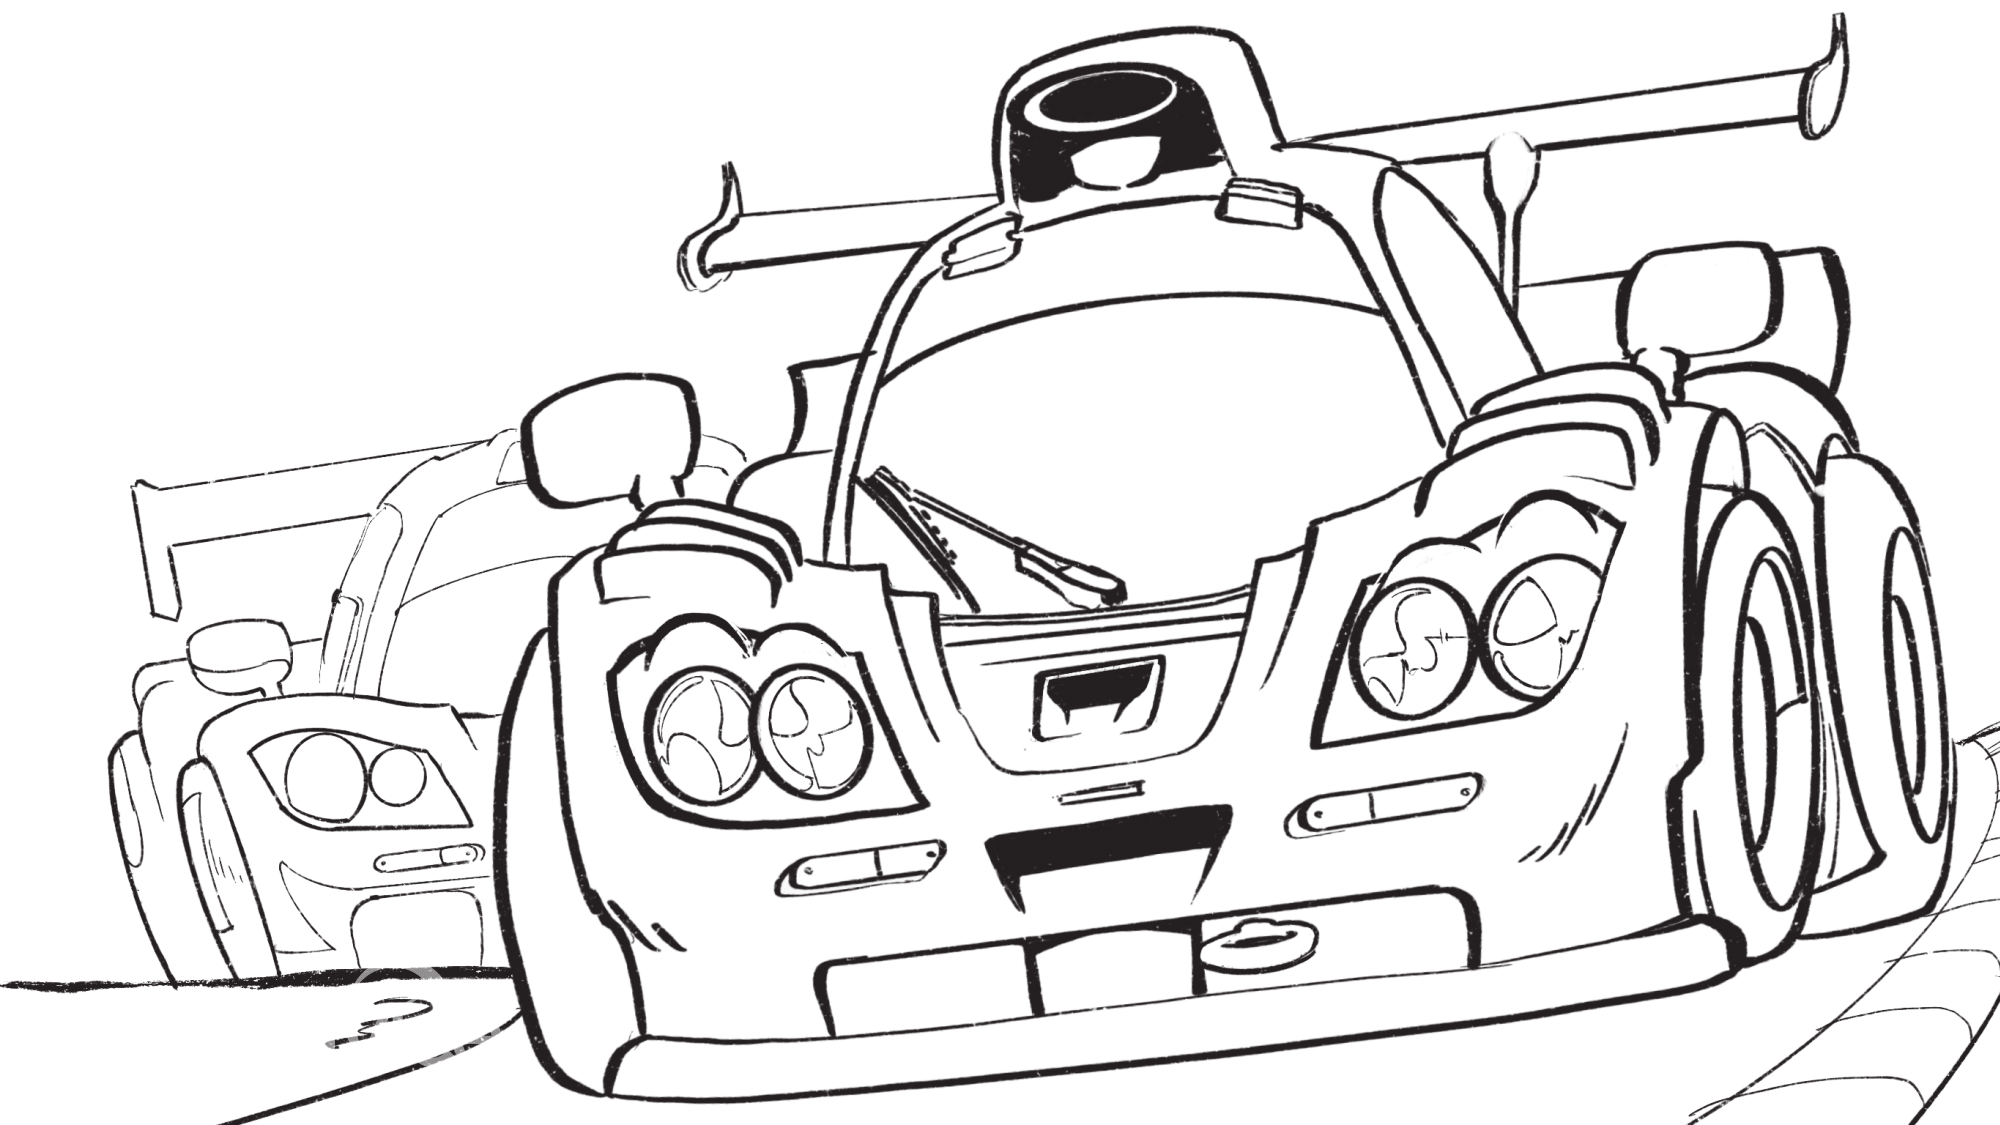 Artists Post Car Colouring Pages For Grownups And Kids